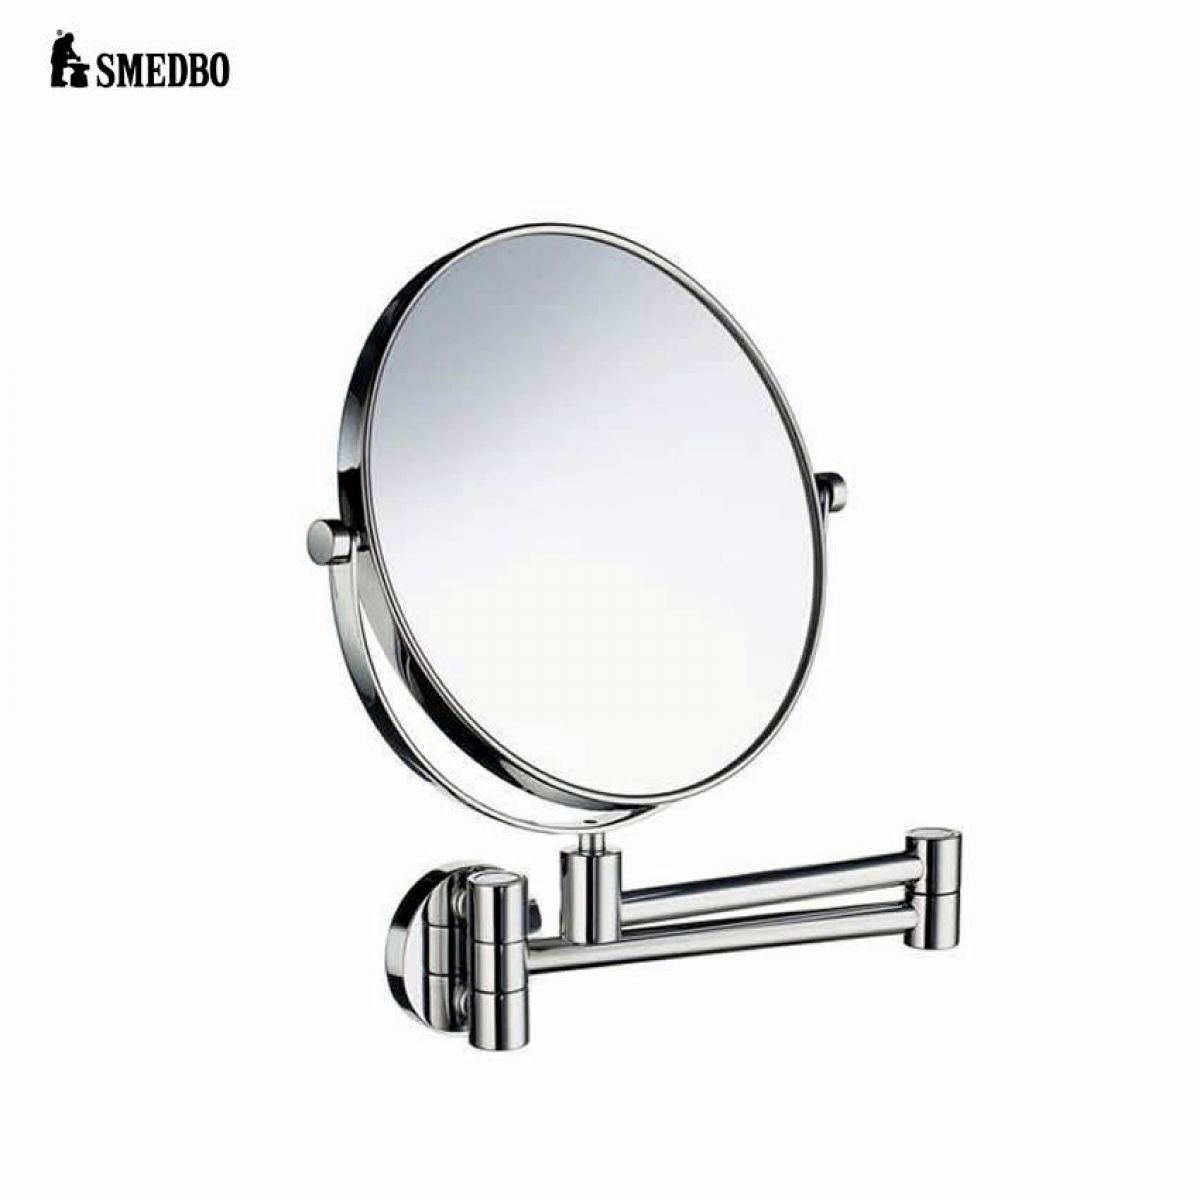 Smedbo Outline Swing Arm Shaving Make Up Mirror Uk Bathrooms